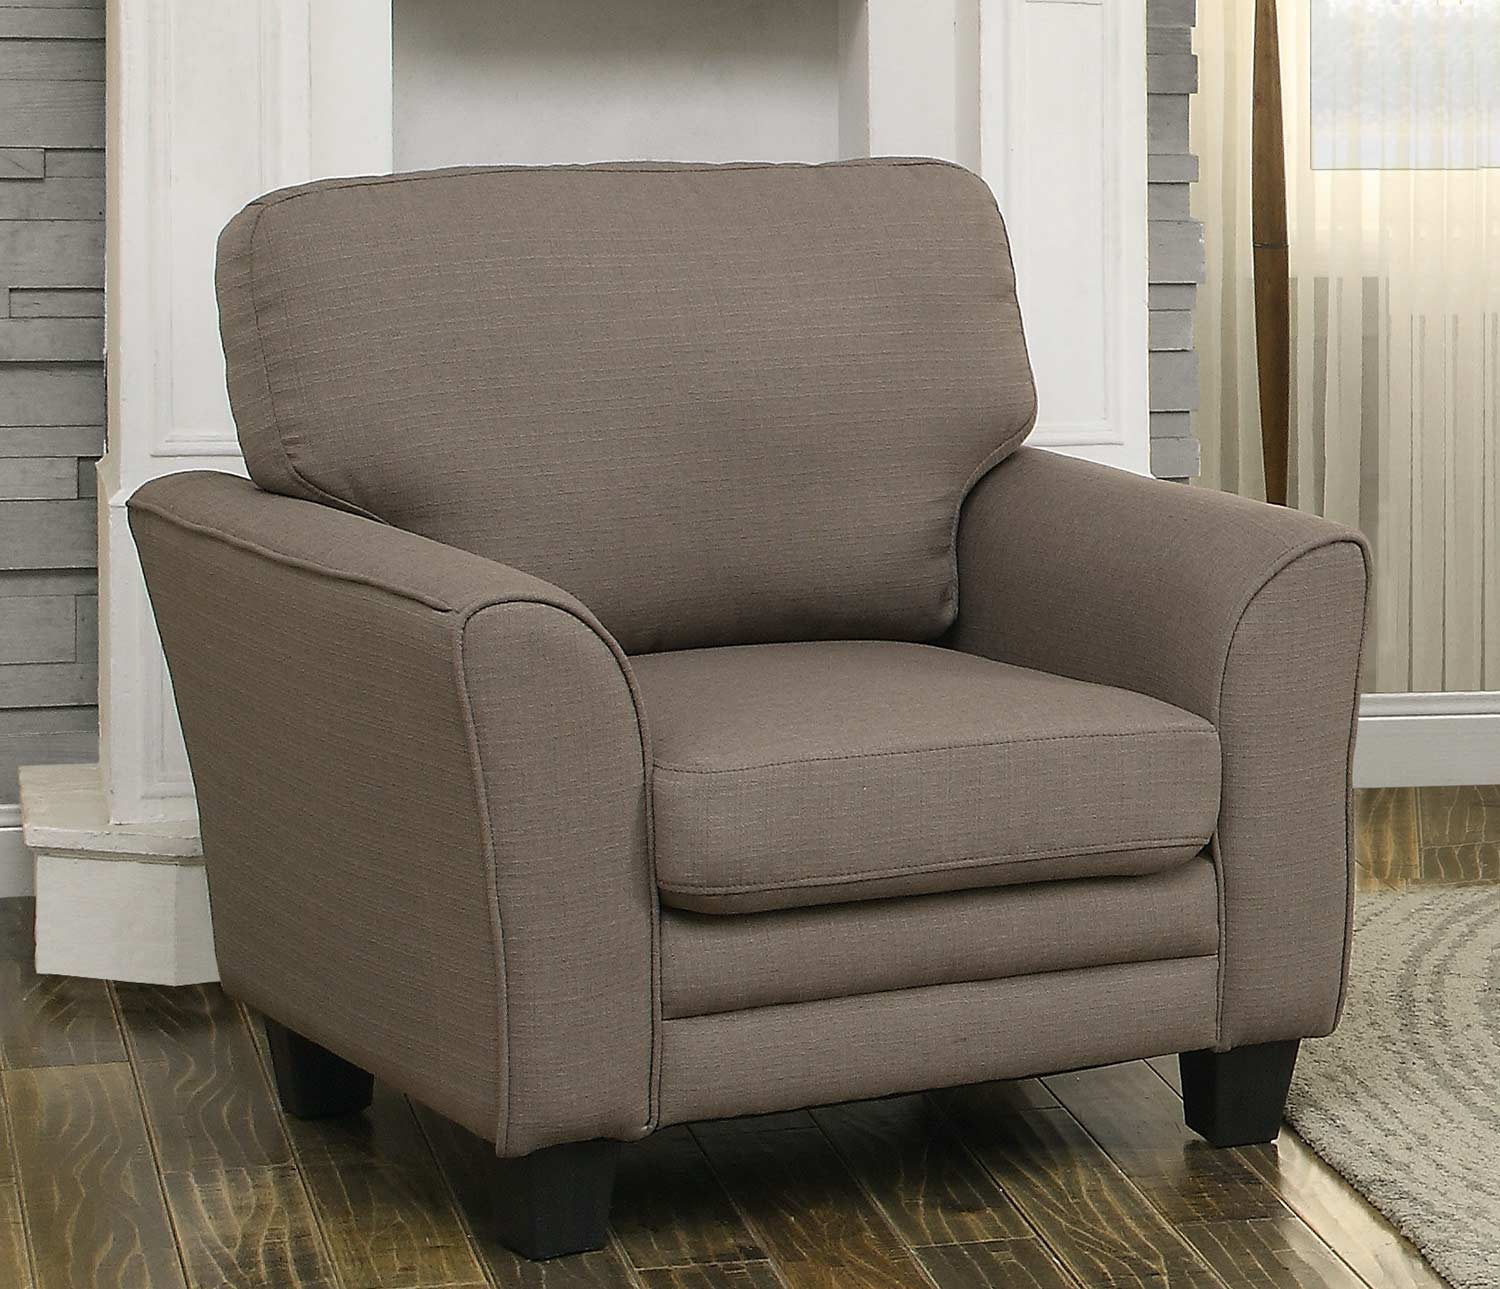 Homelegance Adair Chair - Grey